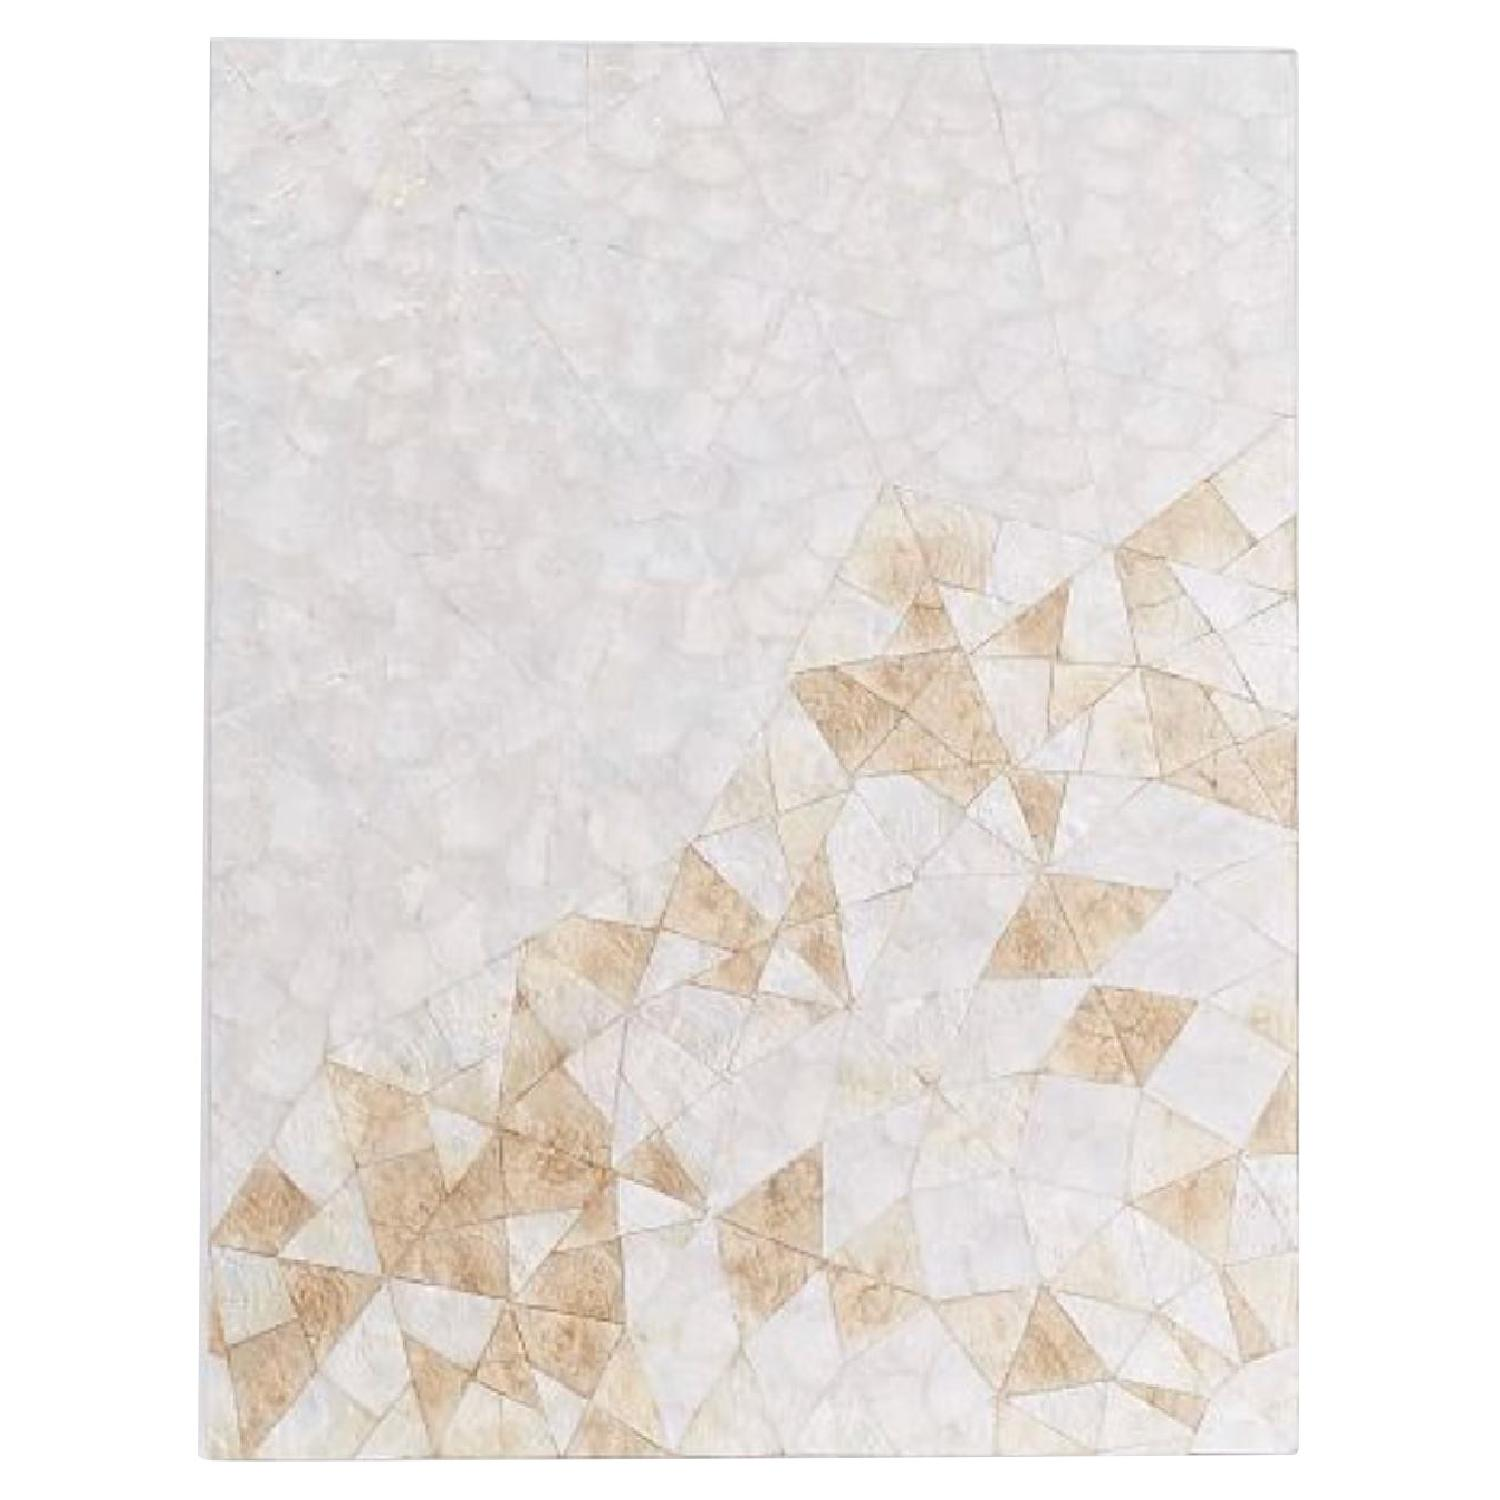 West Elm Capiz Wall Art - Crystal Formation